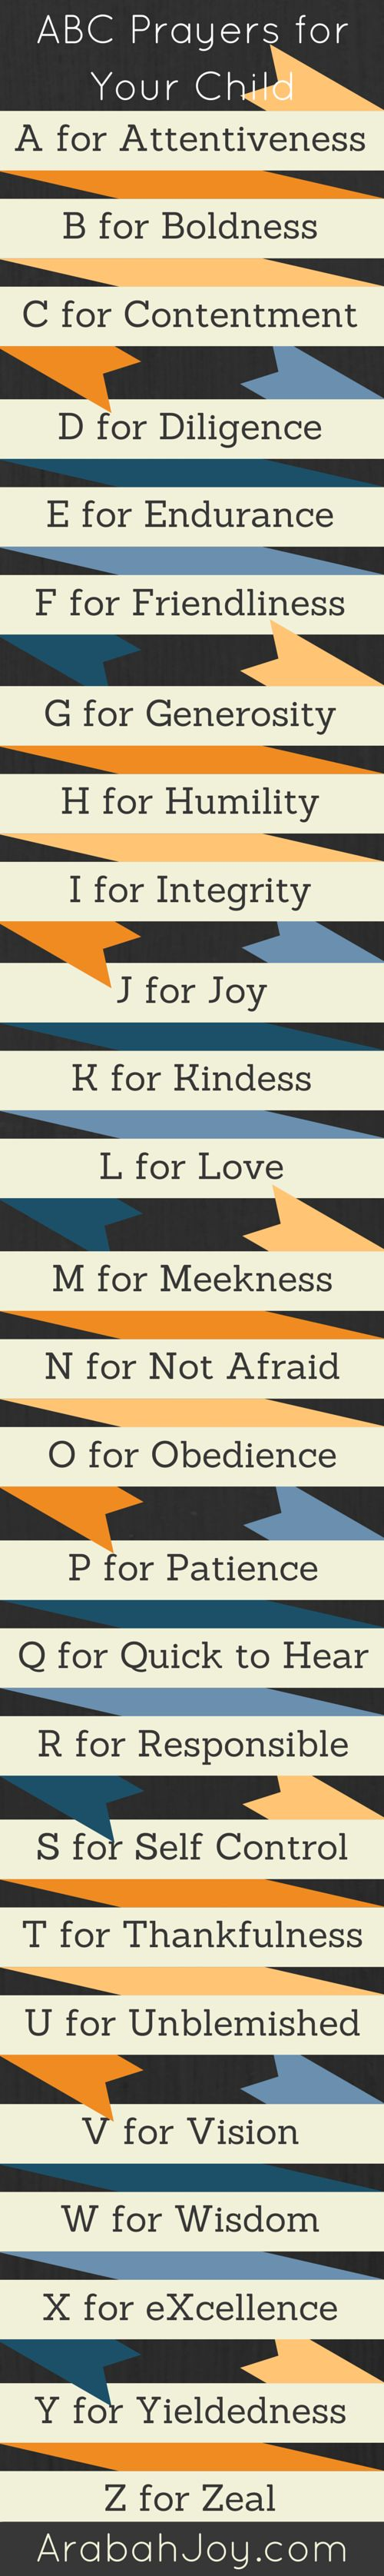 Click the link to grab these FREE printable prayer cards! http://arabahjoy.com/downloads/z-scripture-prayer-card-set/